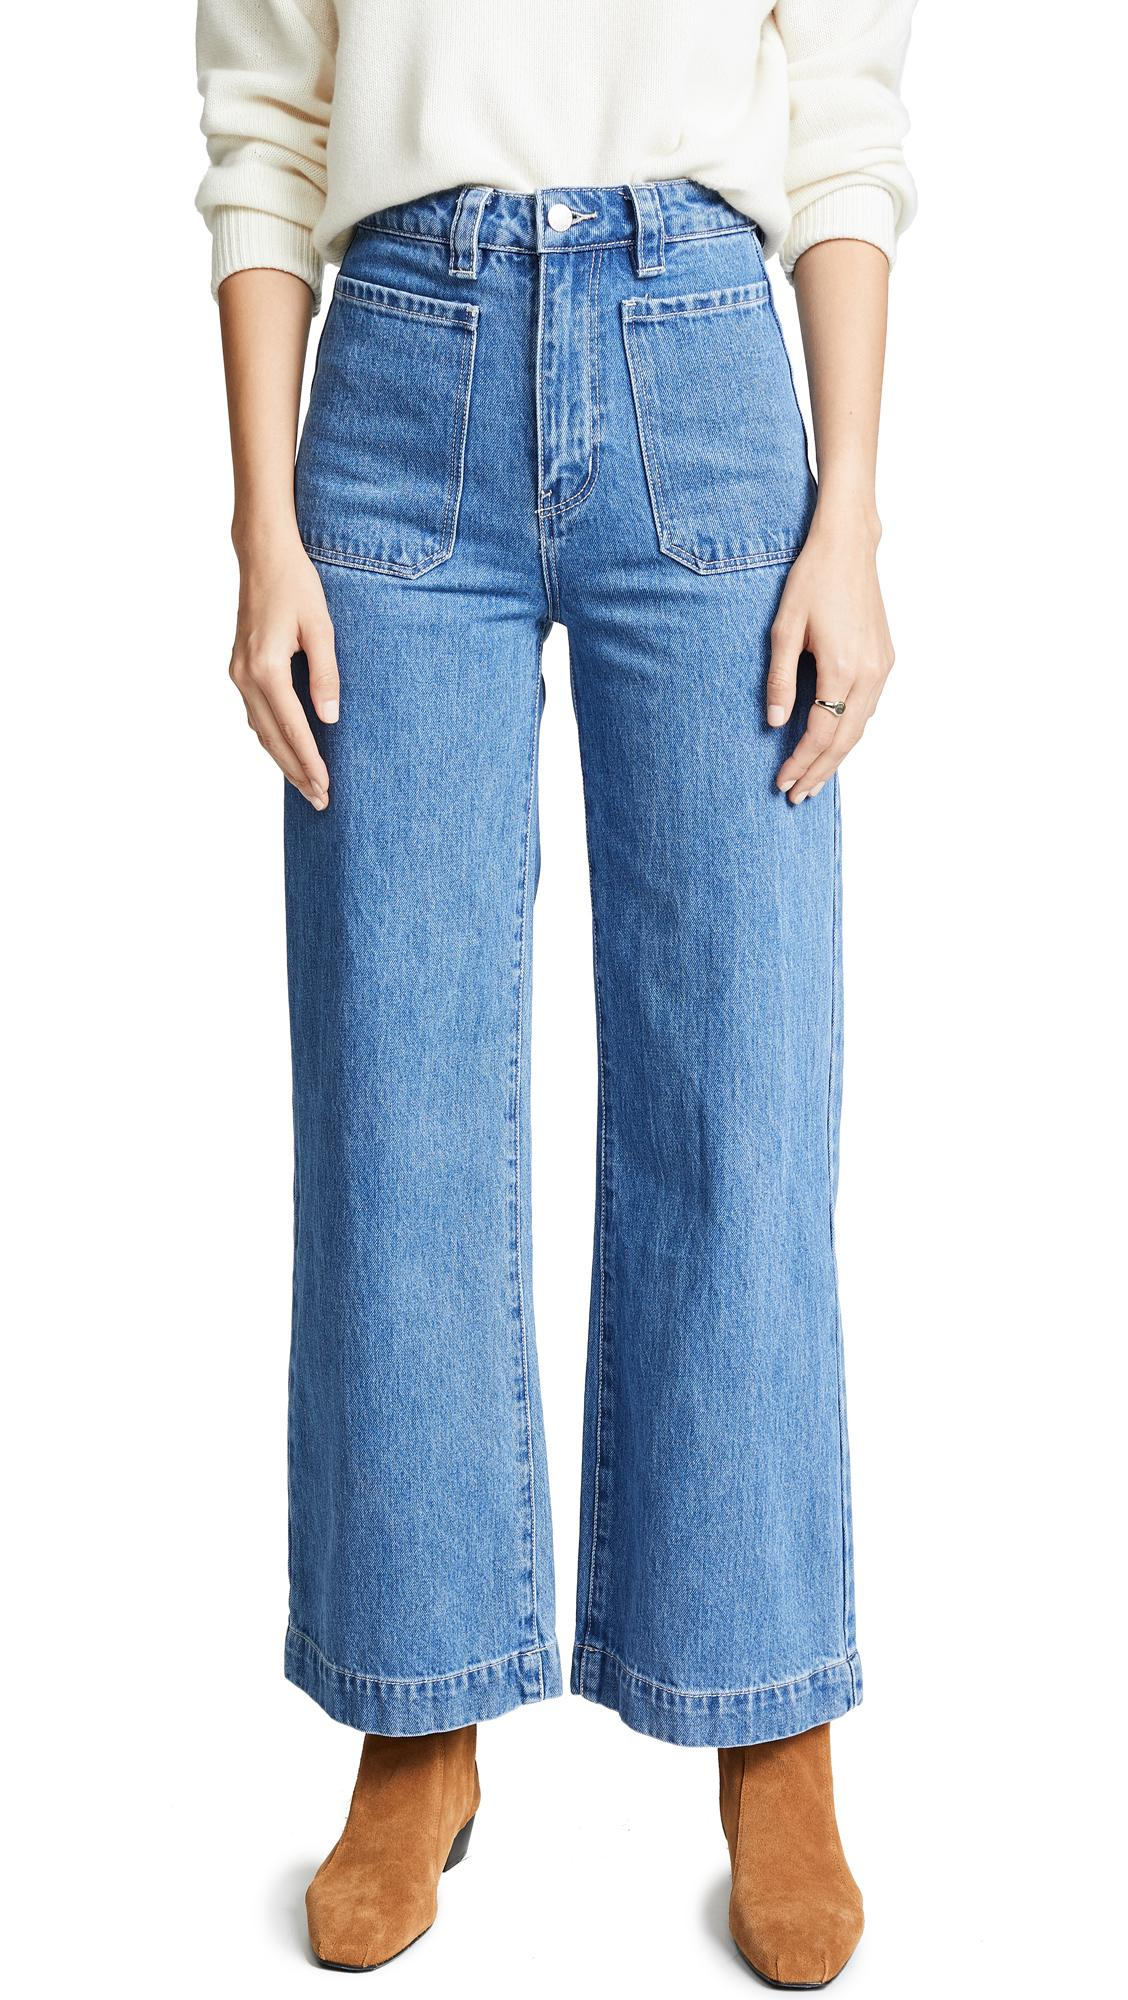 Rolla's Sailor Jeans In Crystal Blue